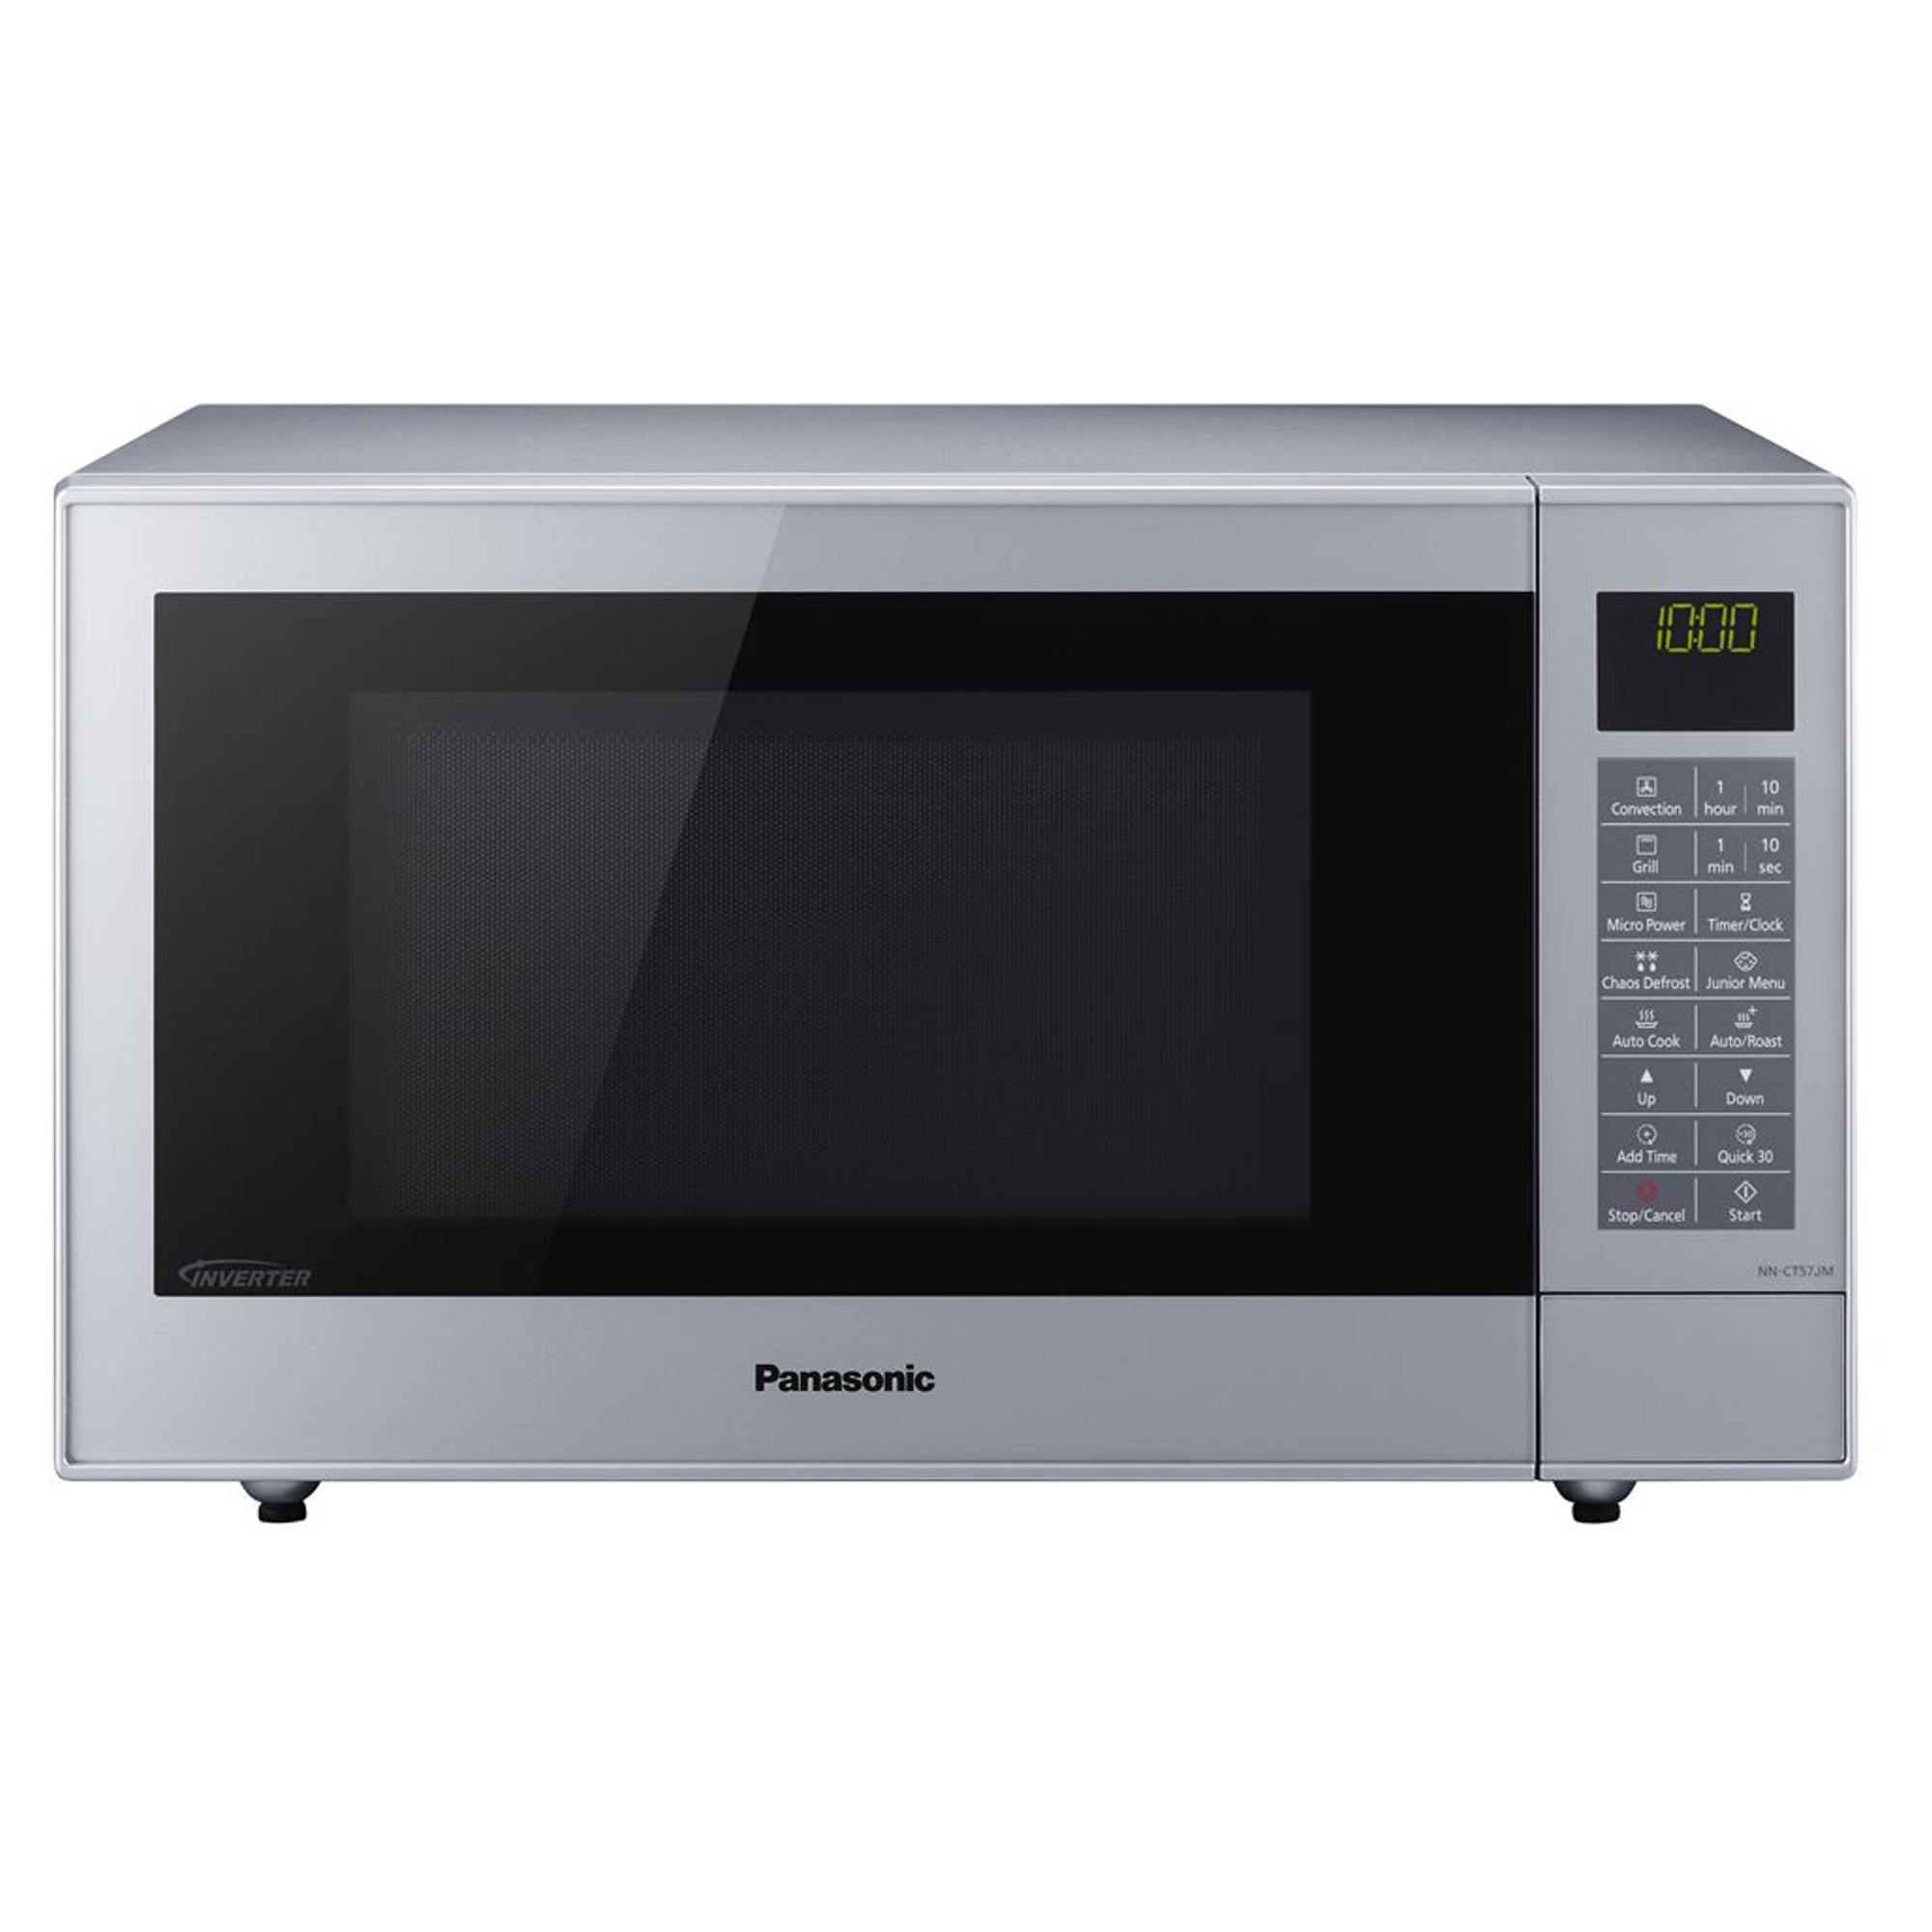 Panasonic Nnct57jmbpq 3 In 1 Combination Microwave